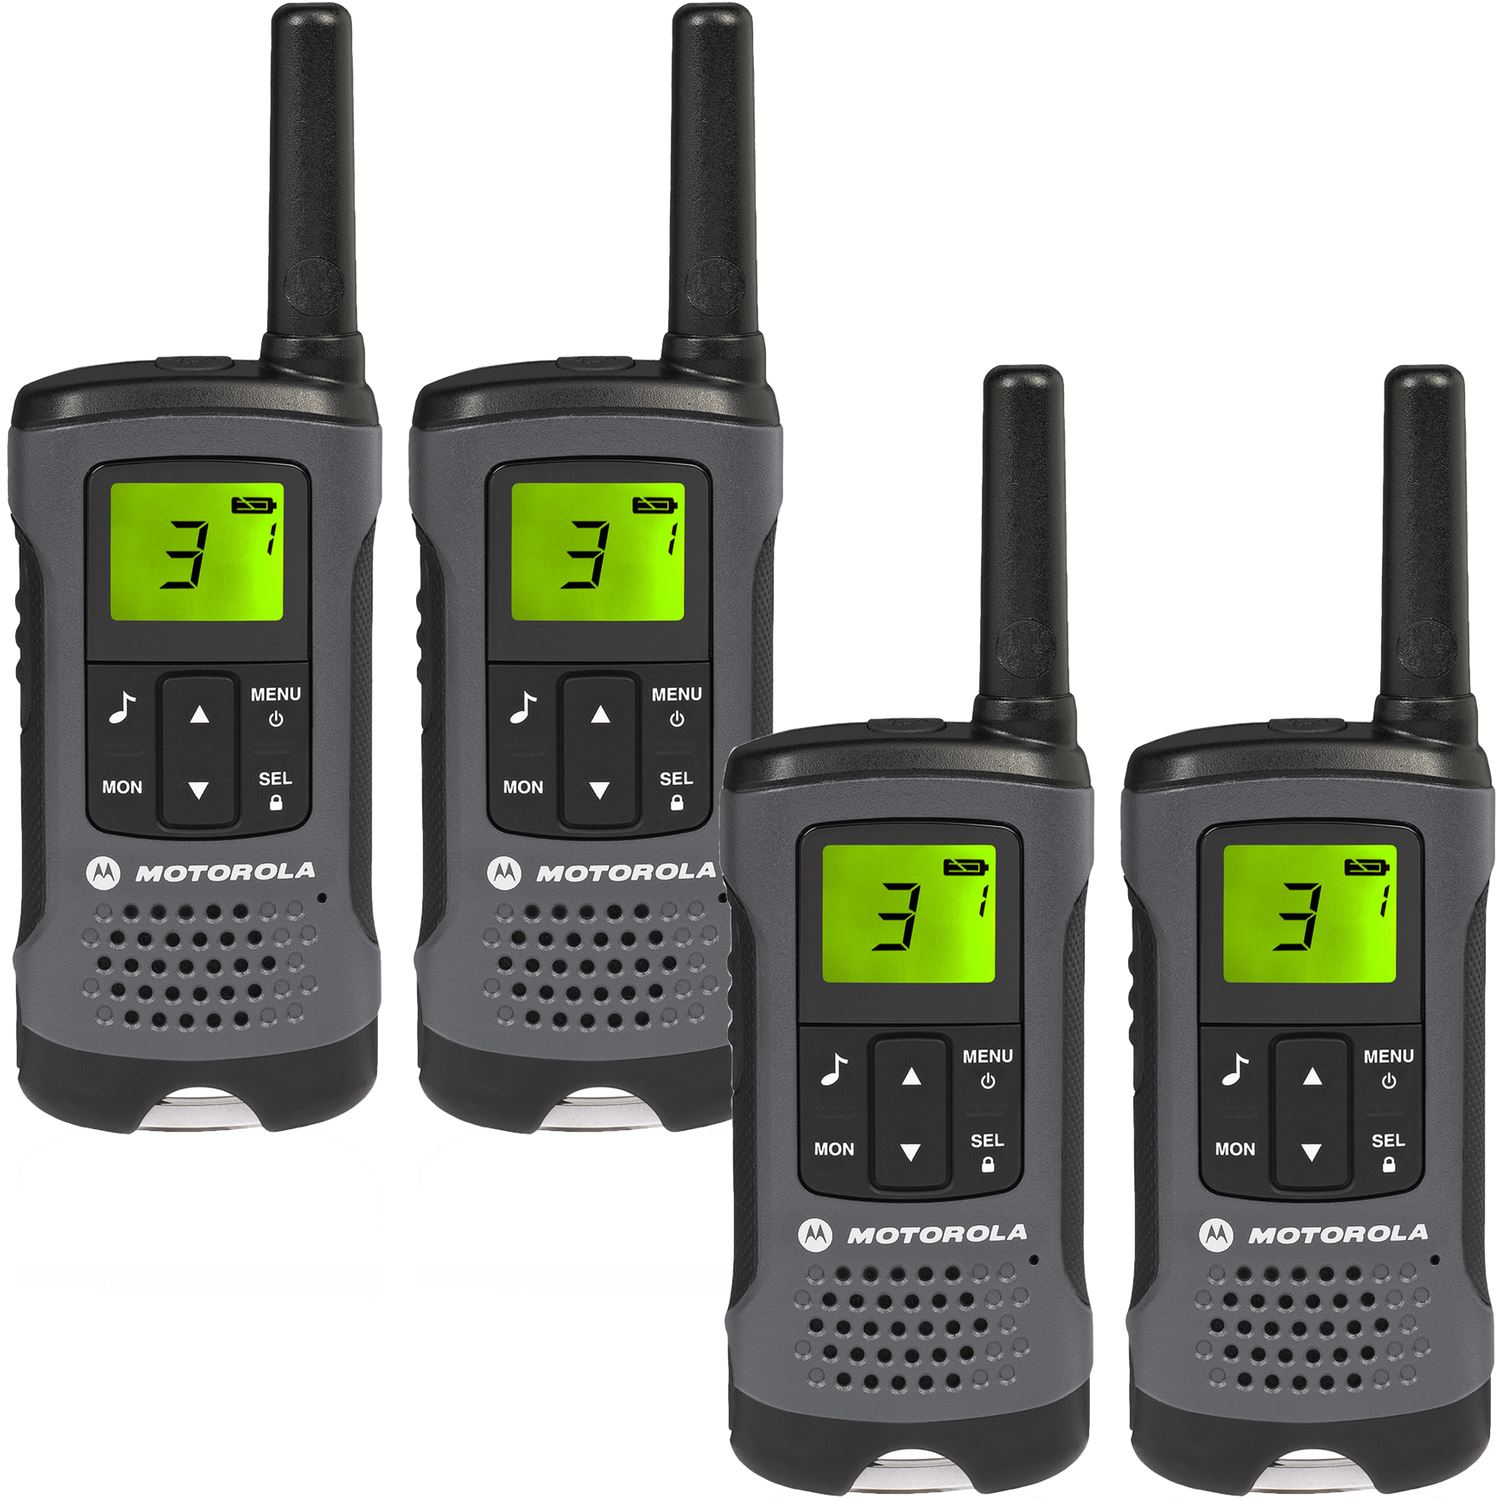 4 motorola tlkr t60z walkie talkie pmr446 rechargeable. Black Bedroom Furniture Sets. Home Design Ideas